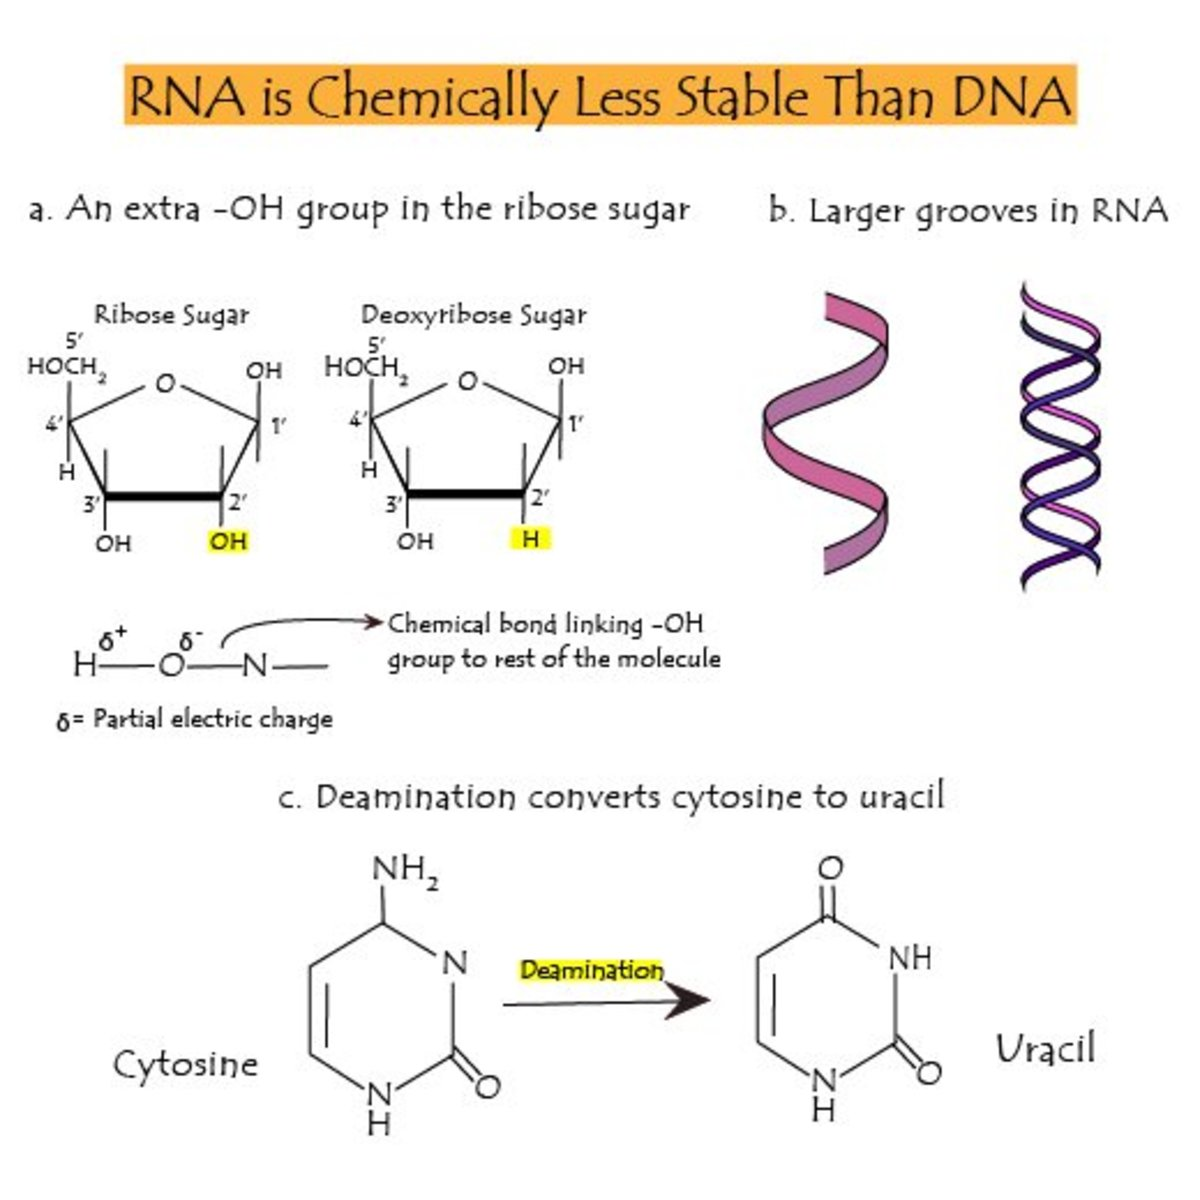 Reasons for lower stability of RNA compared to DNA.